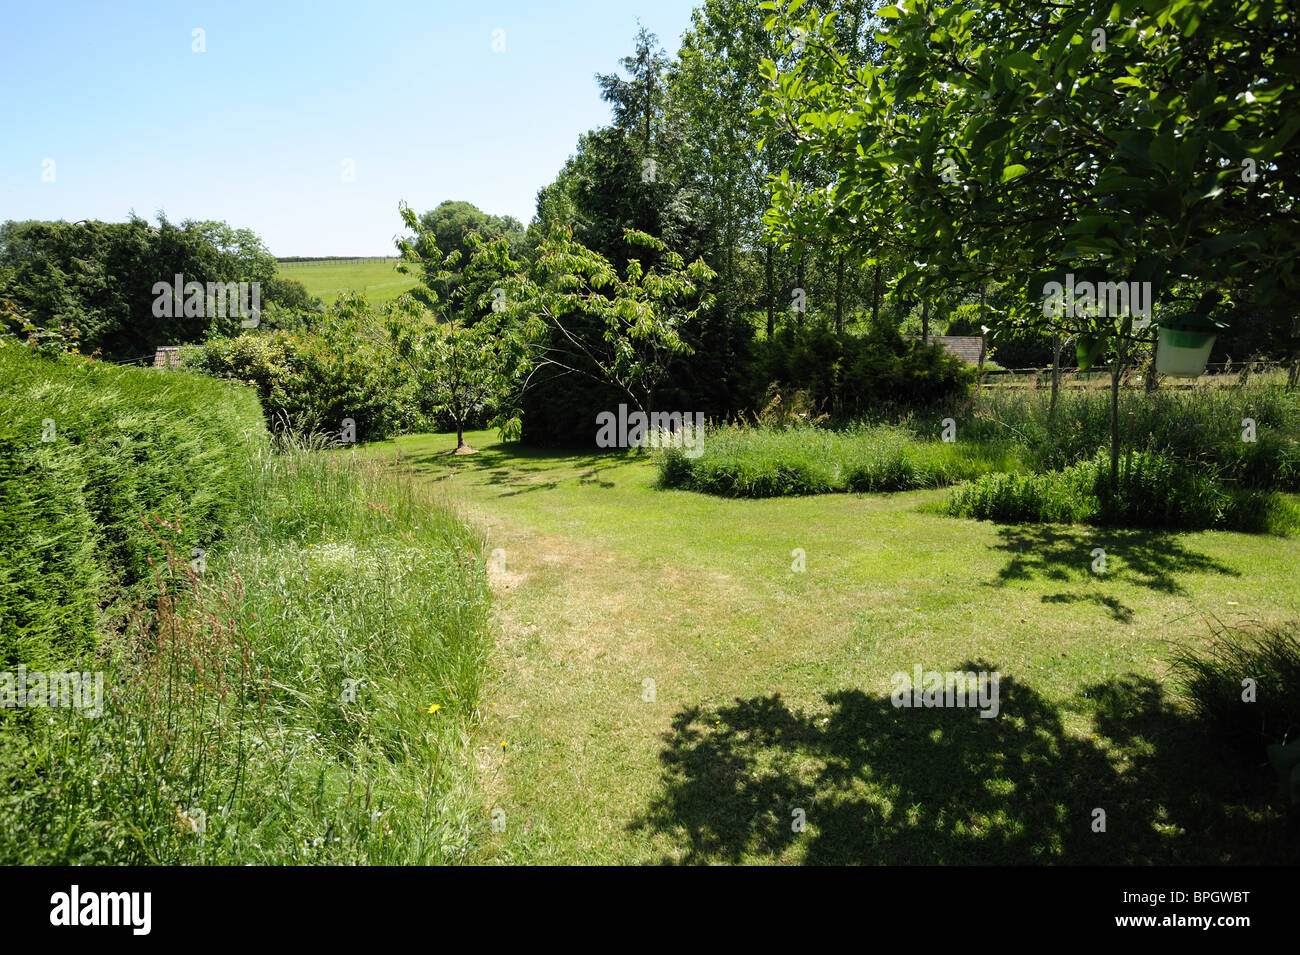 Lawn paths cut through long grass to encourage wildlife and pest predators in a country garden - Stock Image